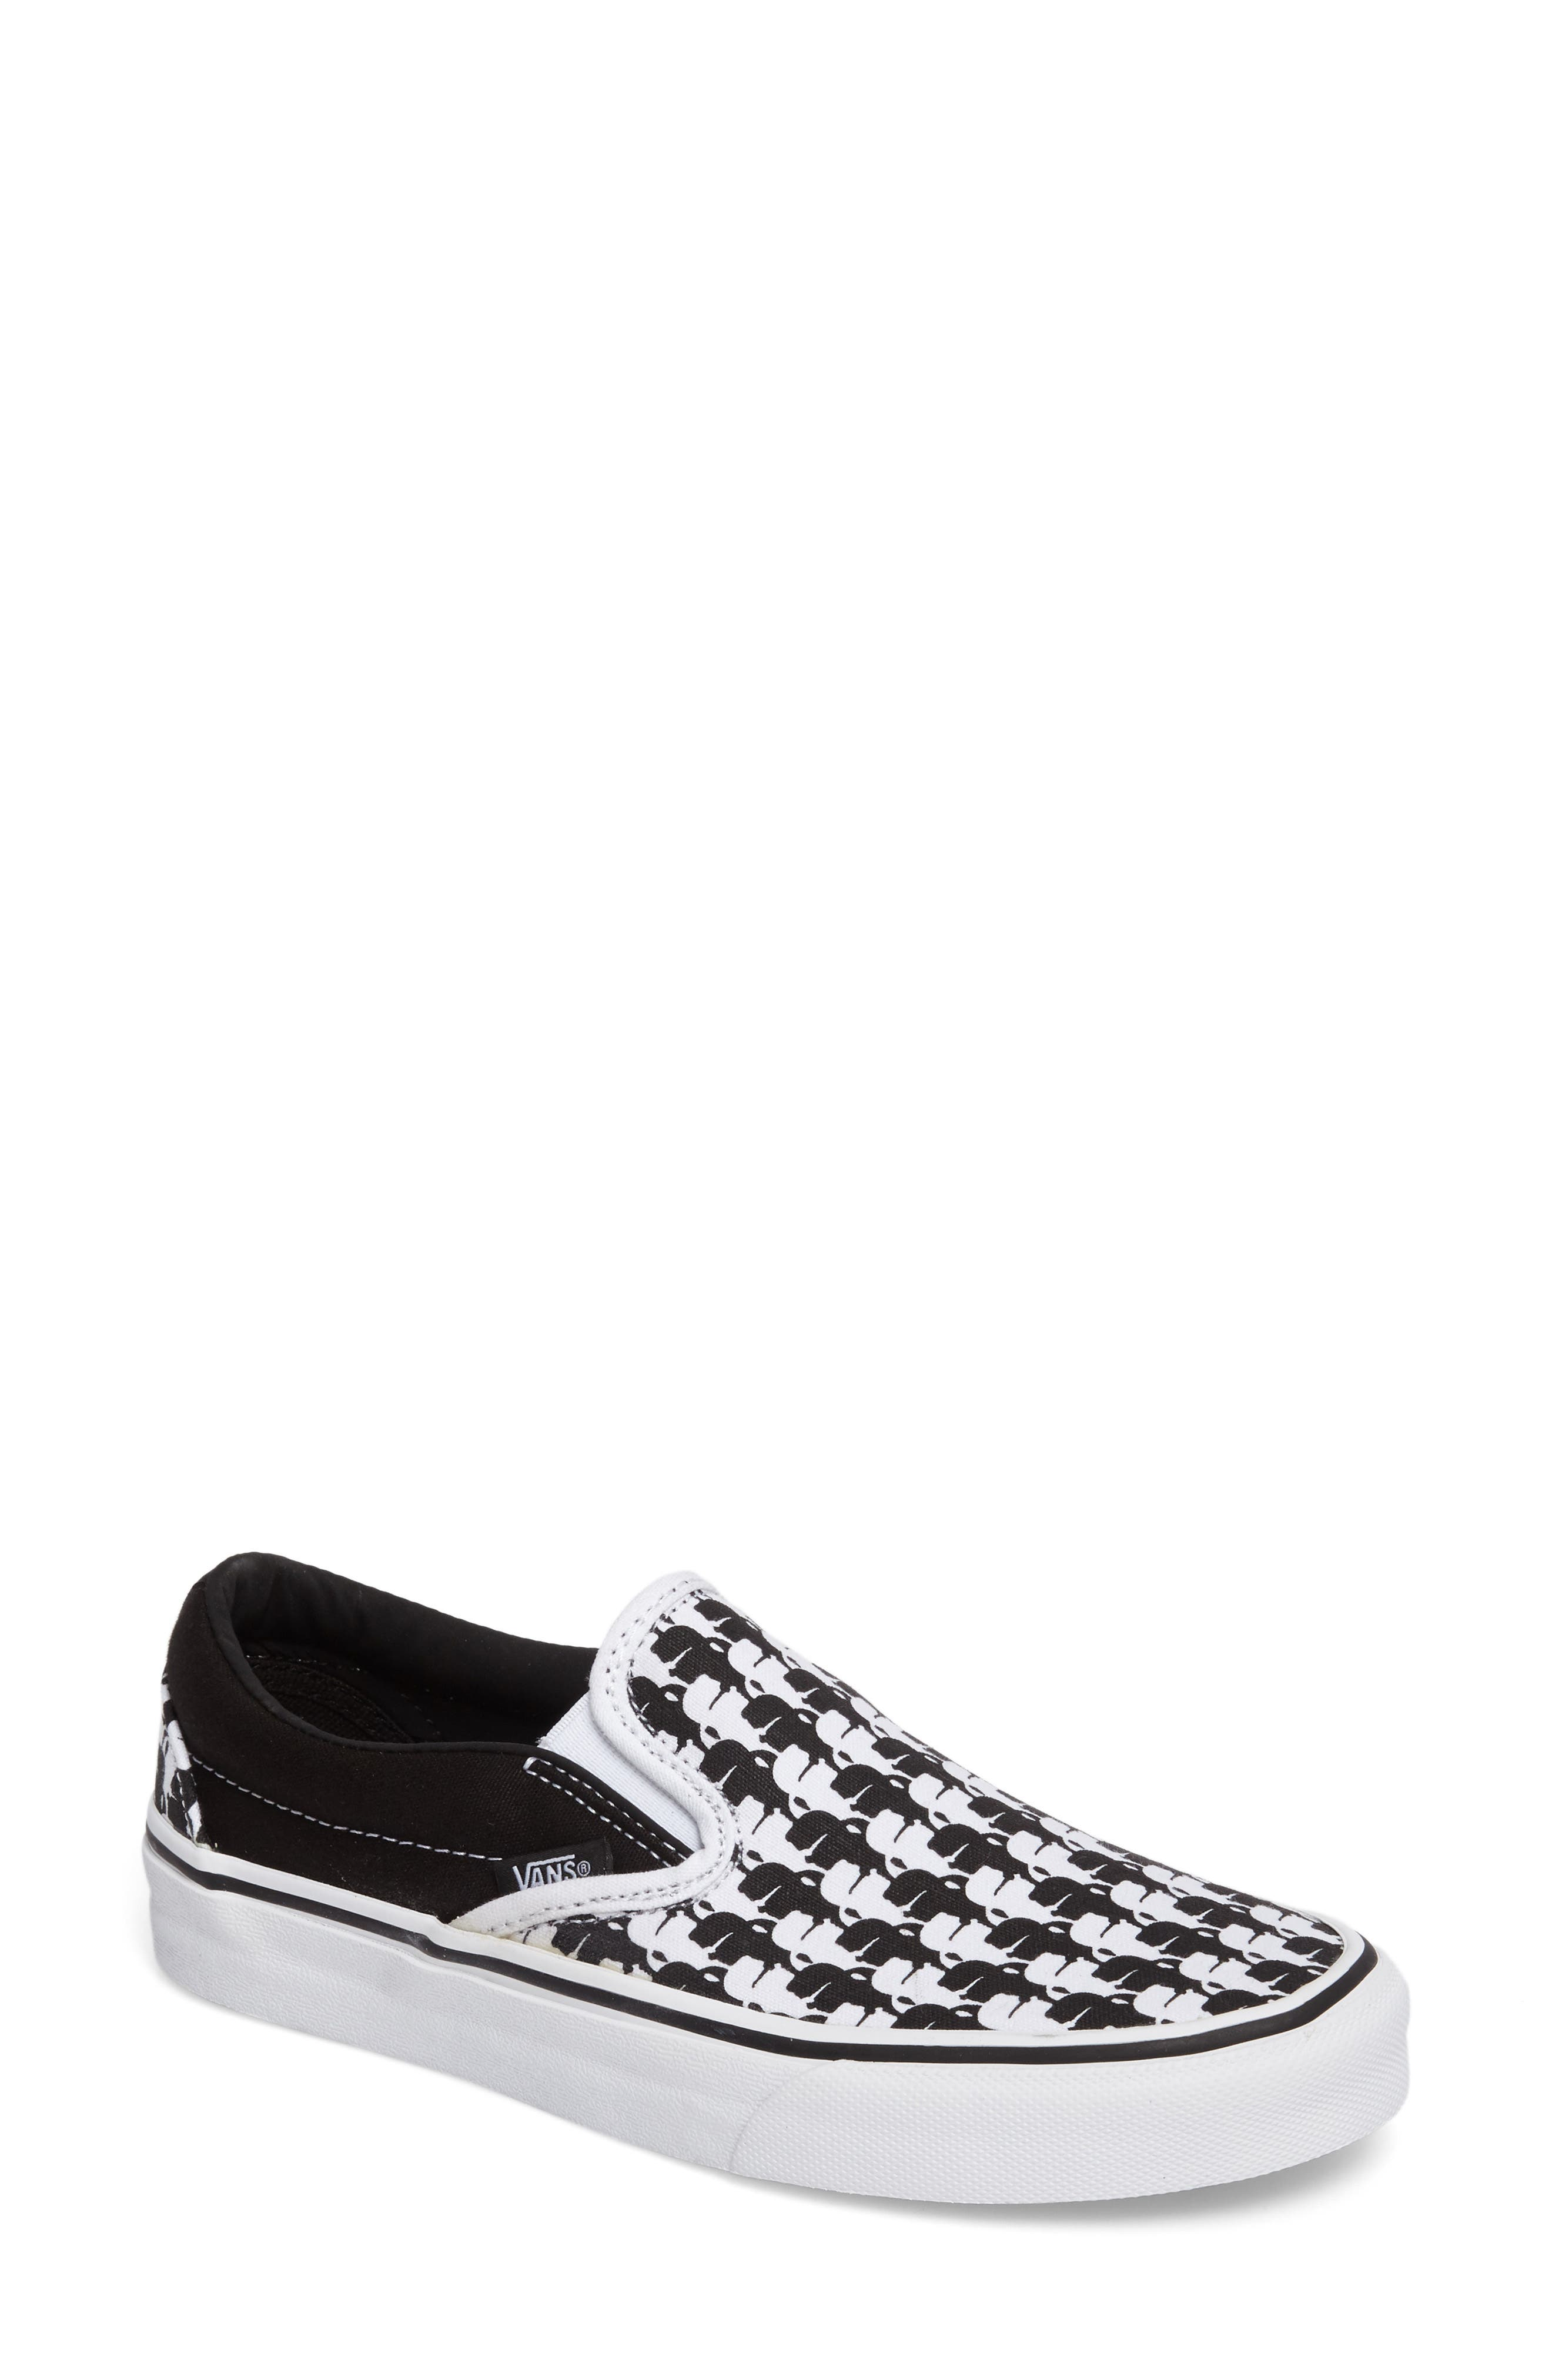 x KARL LAGERFELD Houndstooth Slip-On Sneaker,                         Main,                         color, 001